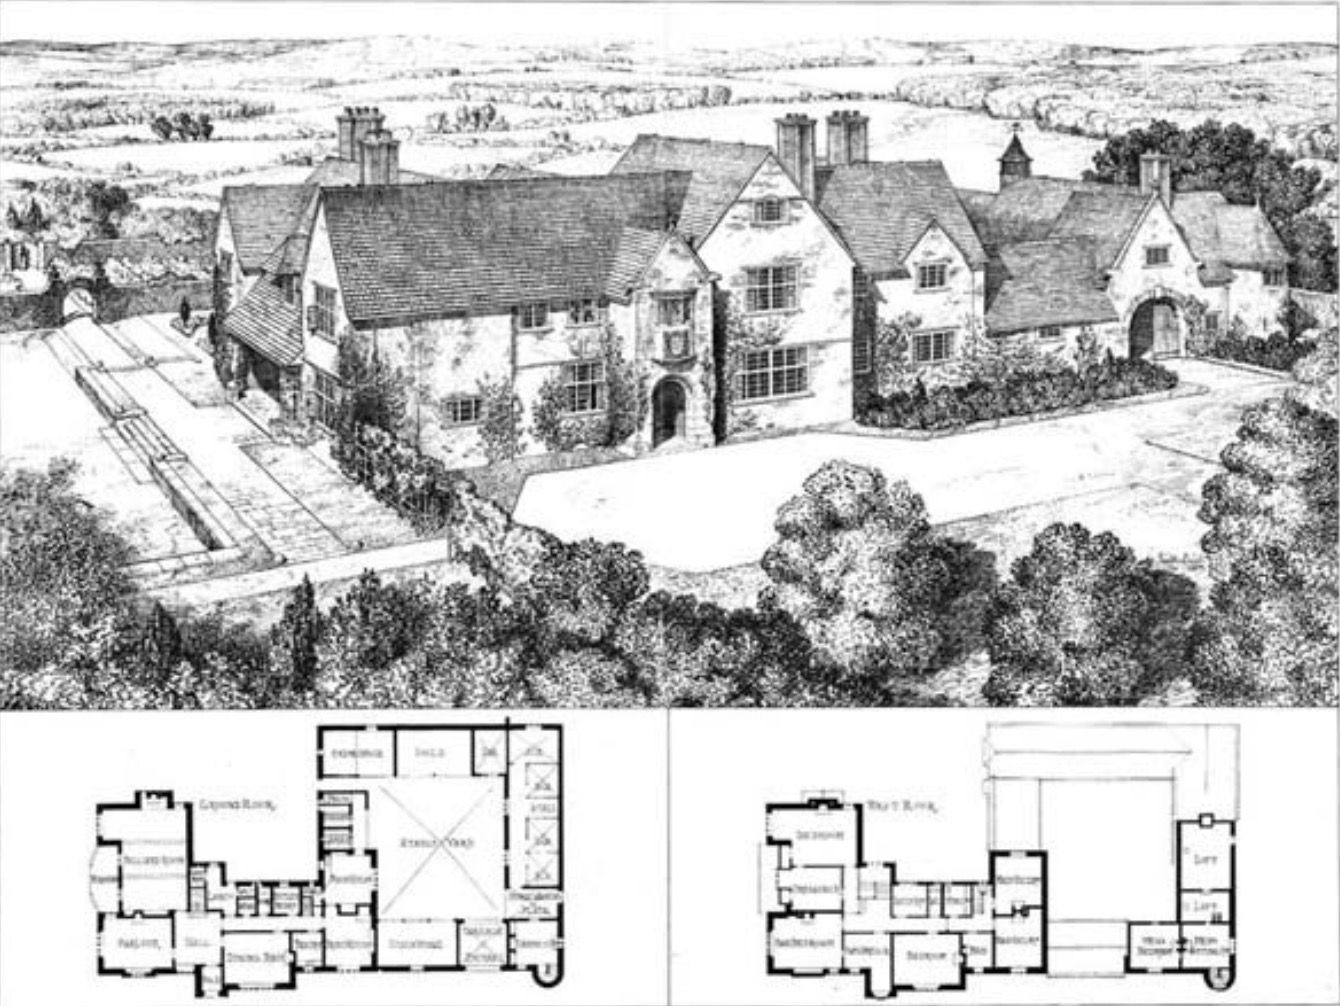 English Country Estate Vintage House Plans Courtyard House Plans Country House Plans